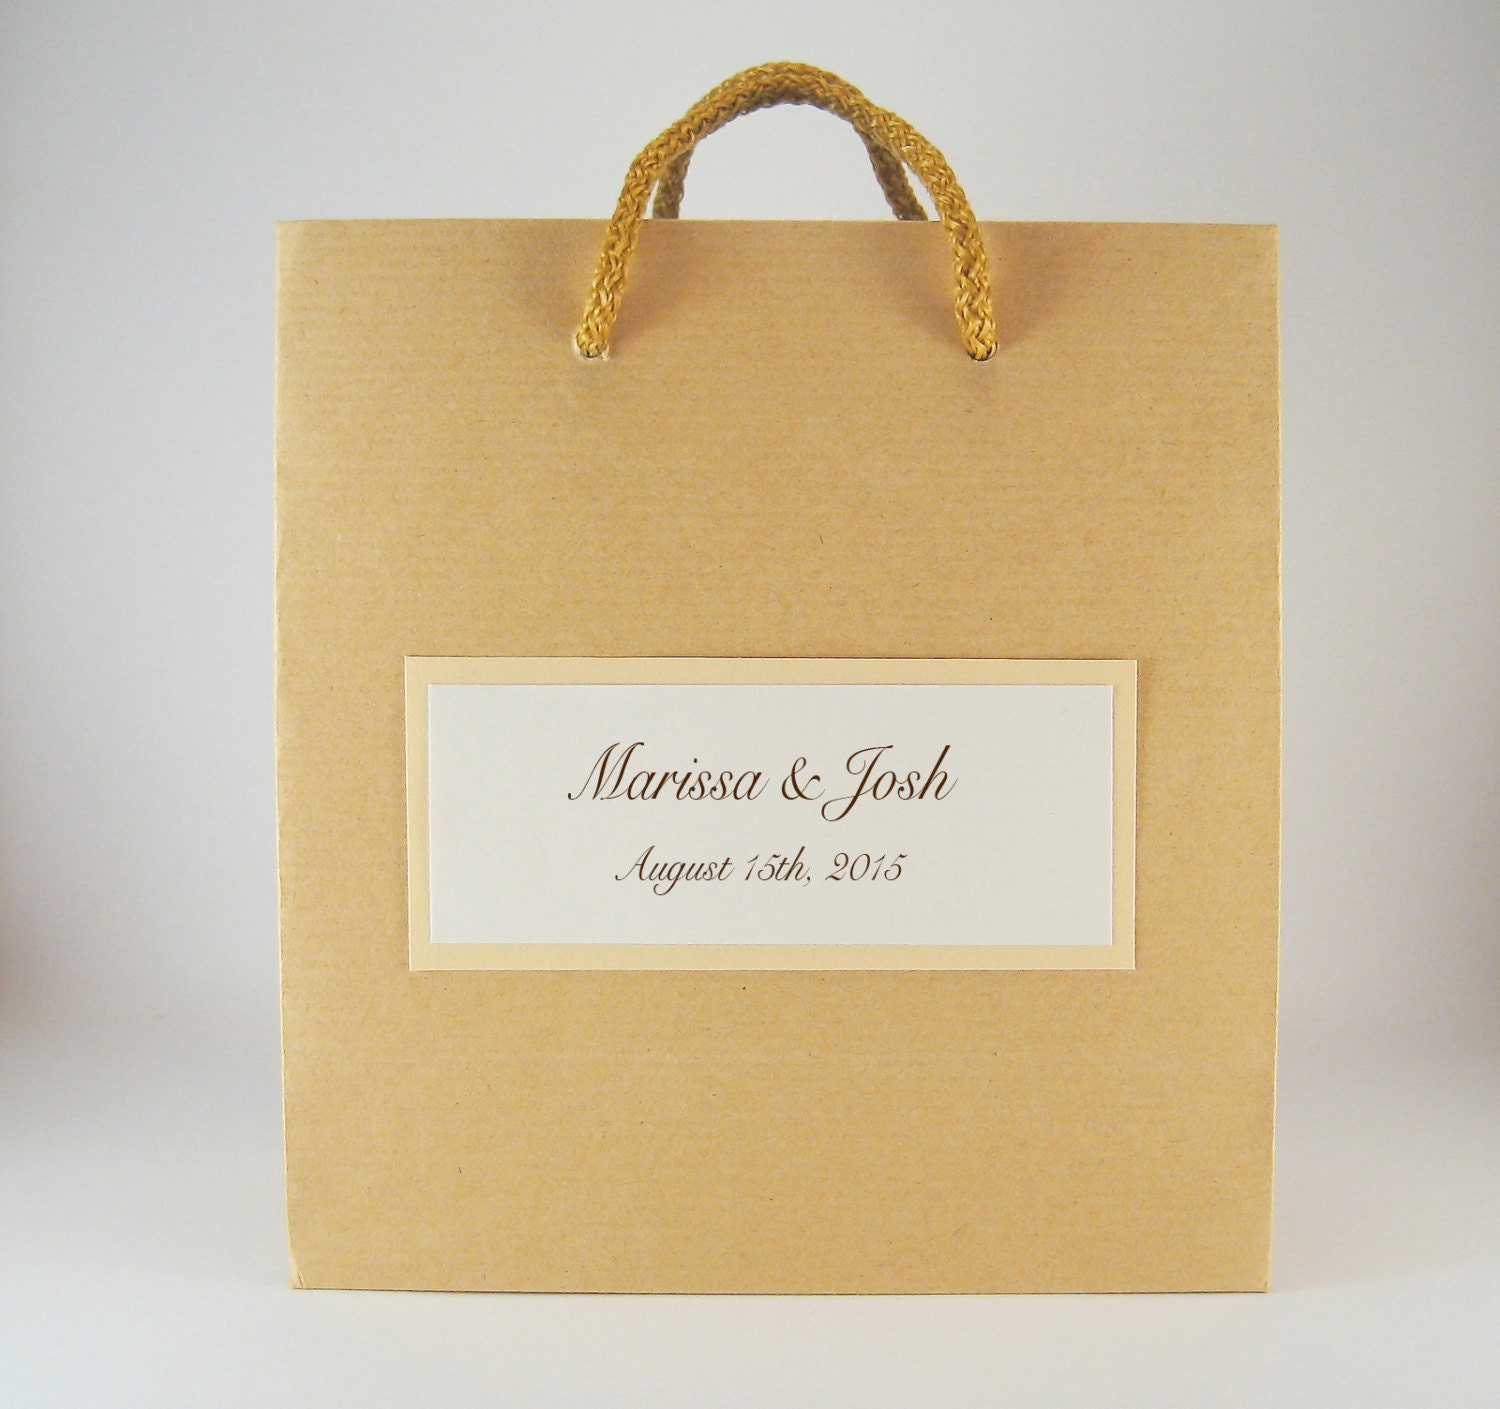 Rustic Wedding Favor Bags 40 Square Kraft Brown by stoykaspaperie